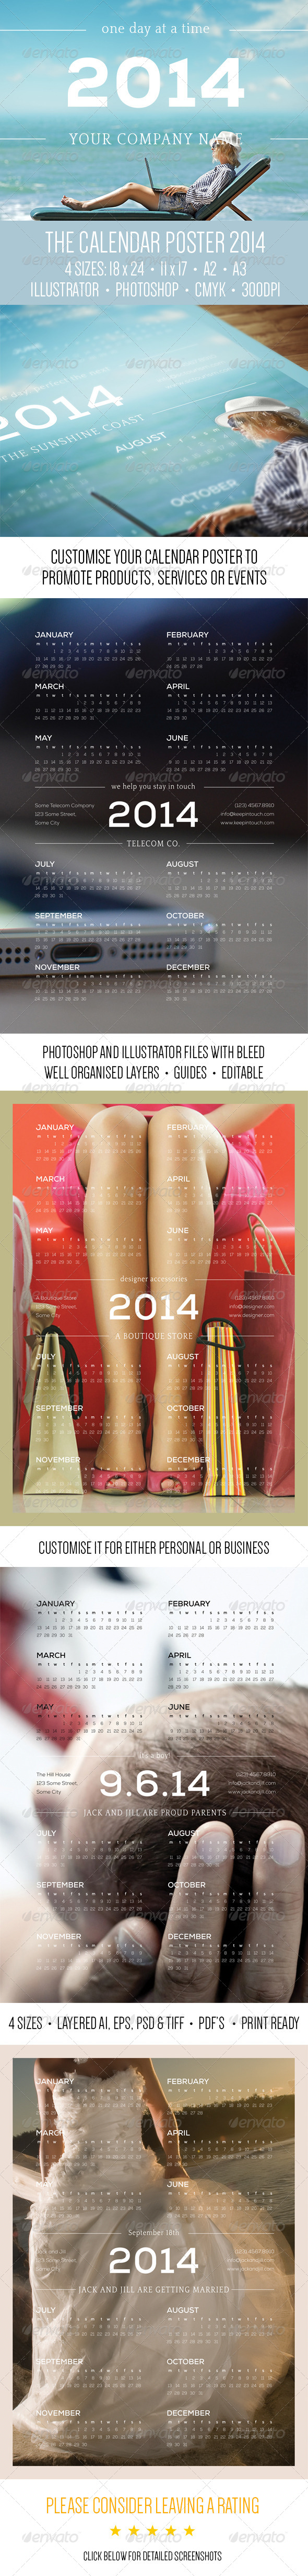 GraphicRiver The Calendar Poster 2014 6448419